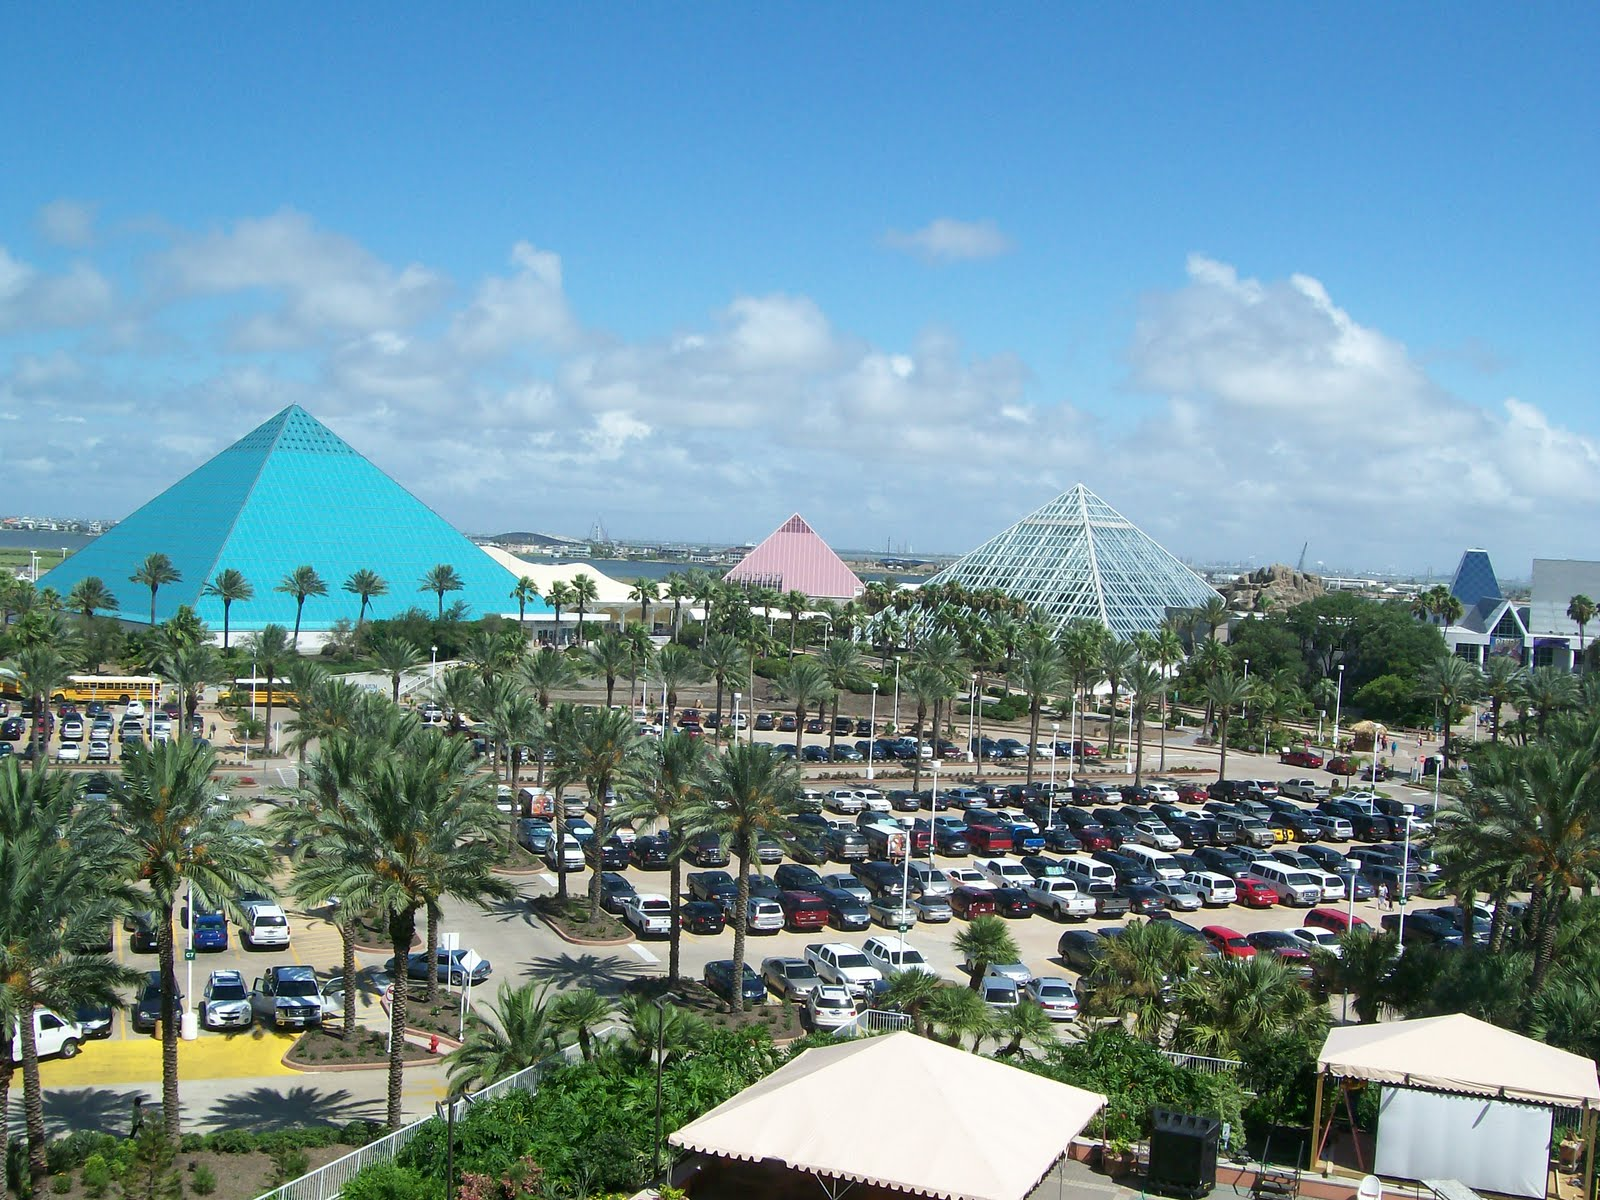 Rockhounding Around: Galveston trip - the Aquarium at ...